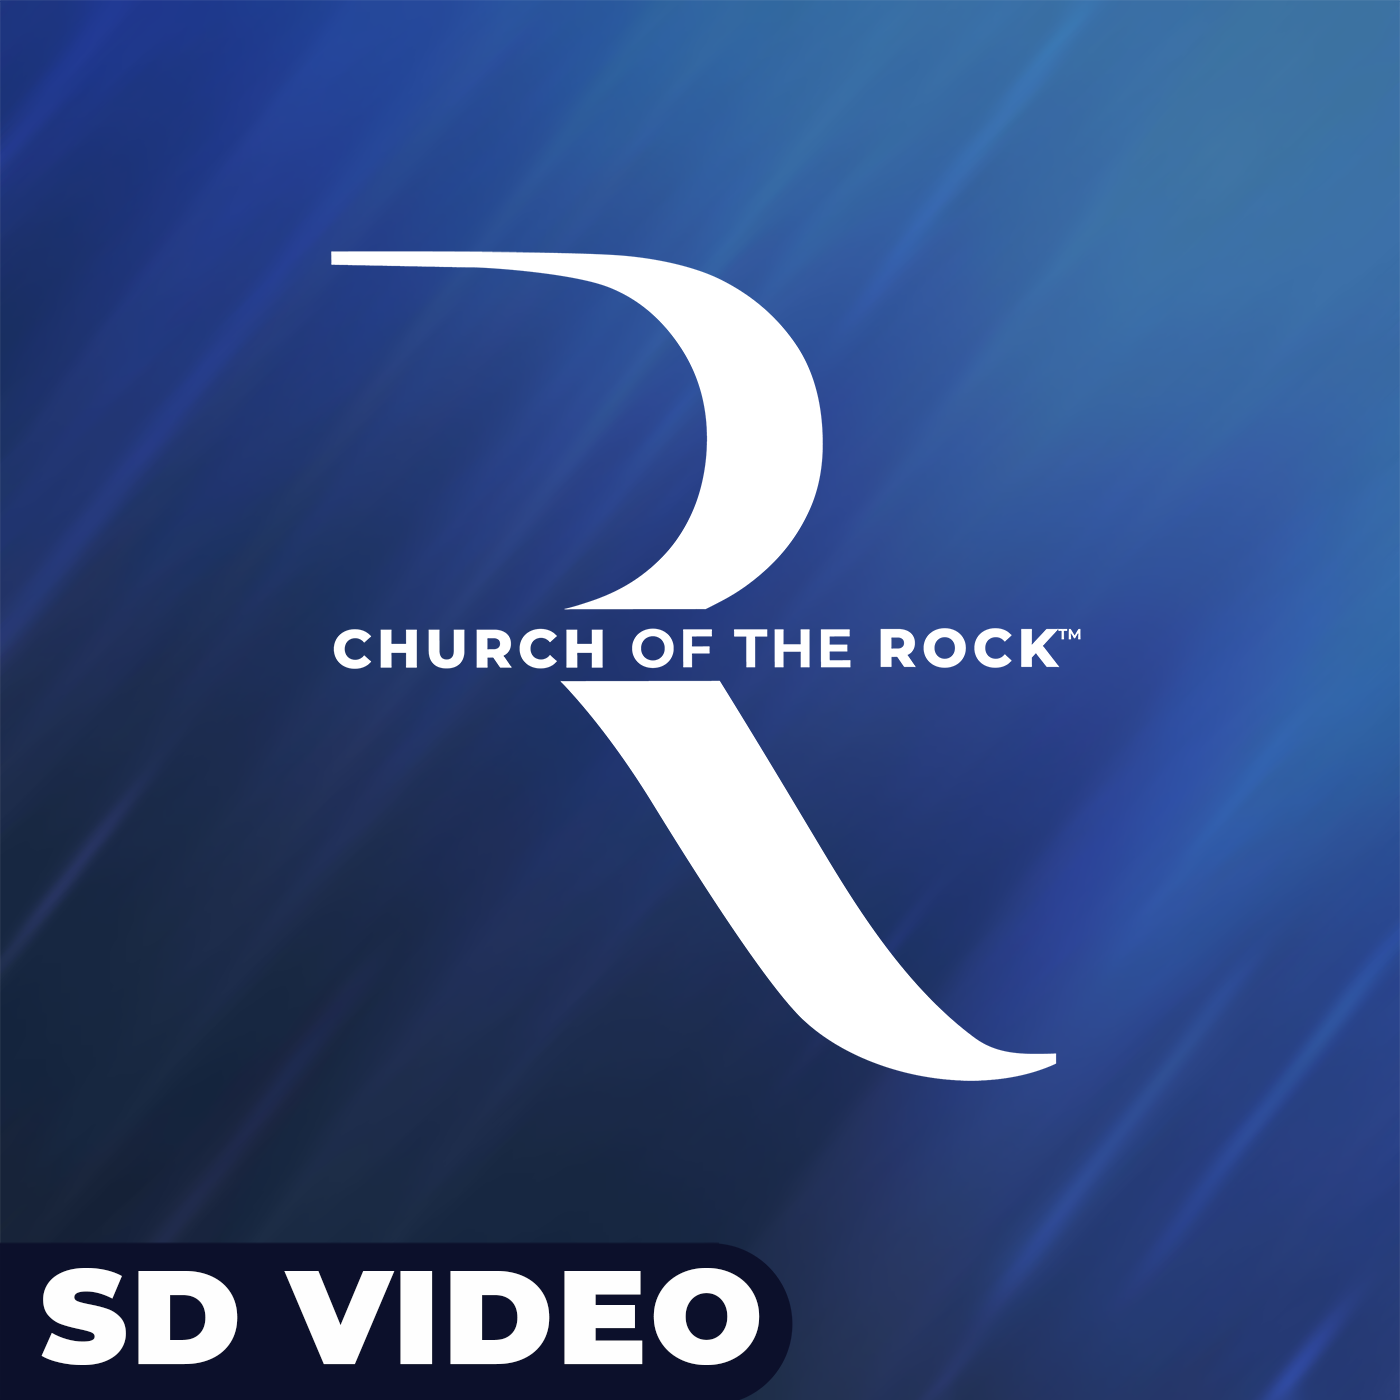 Church of the Rock: Weekend Messages: SD Video